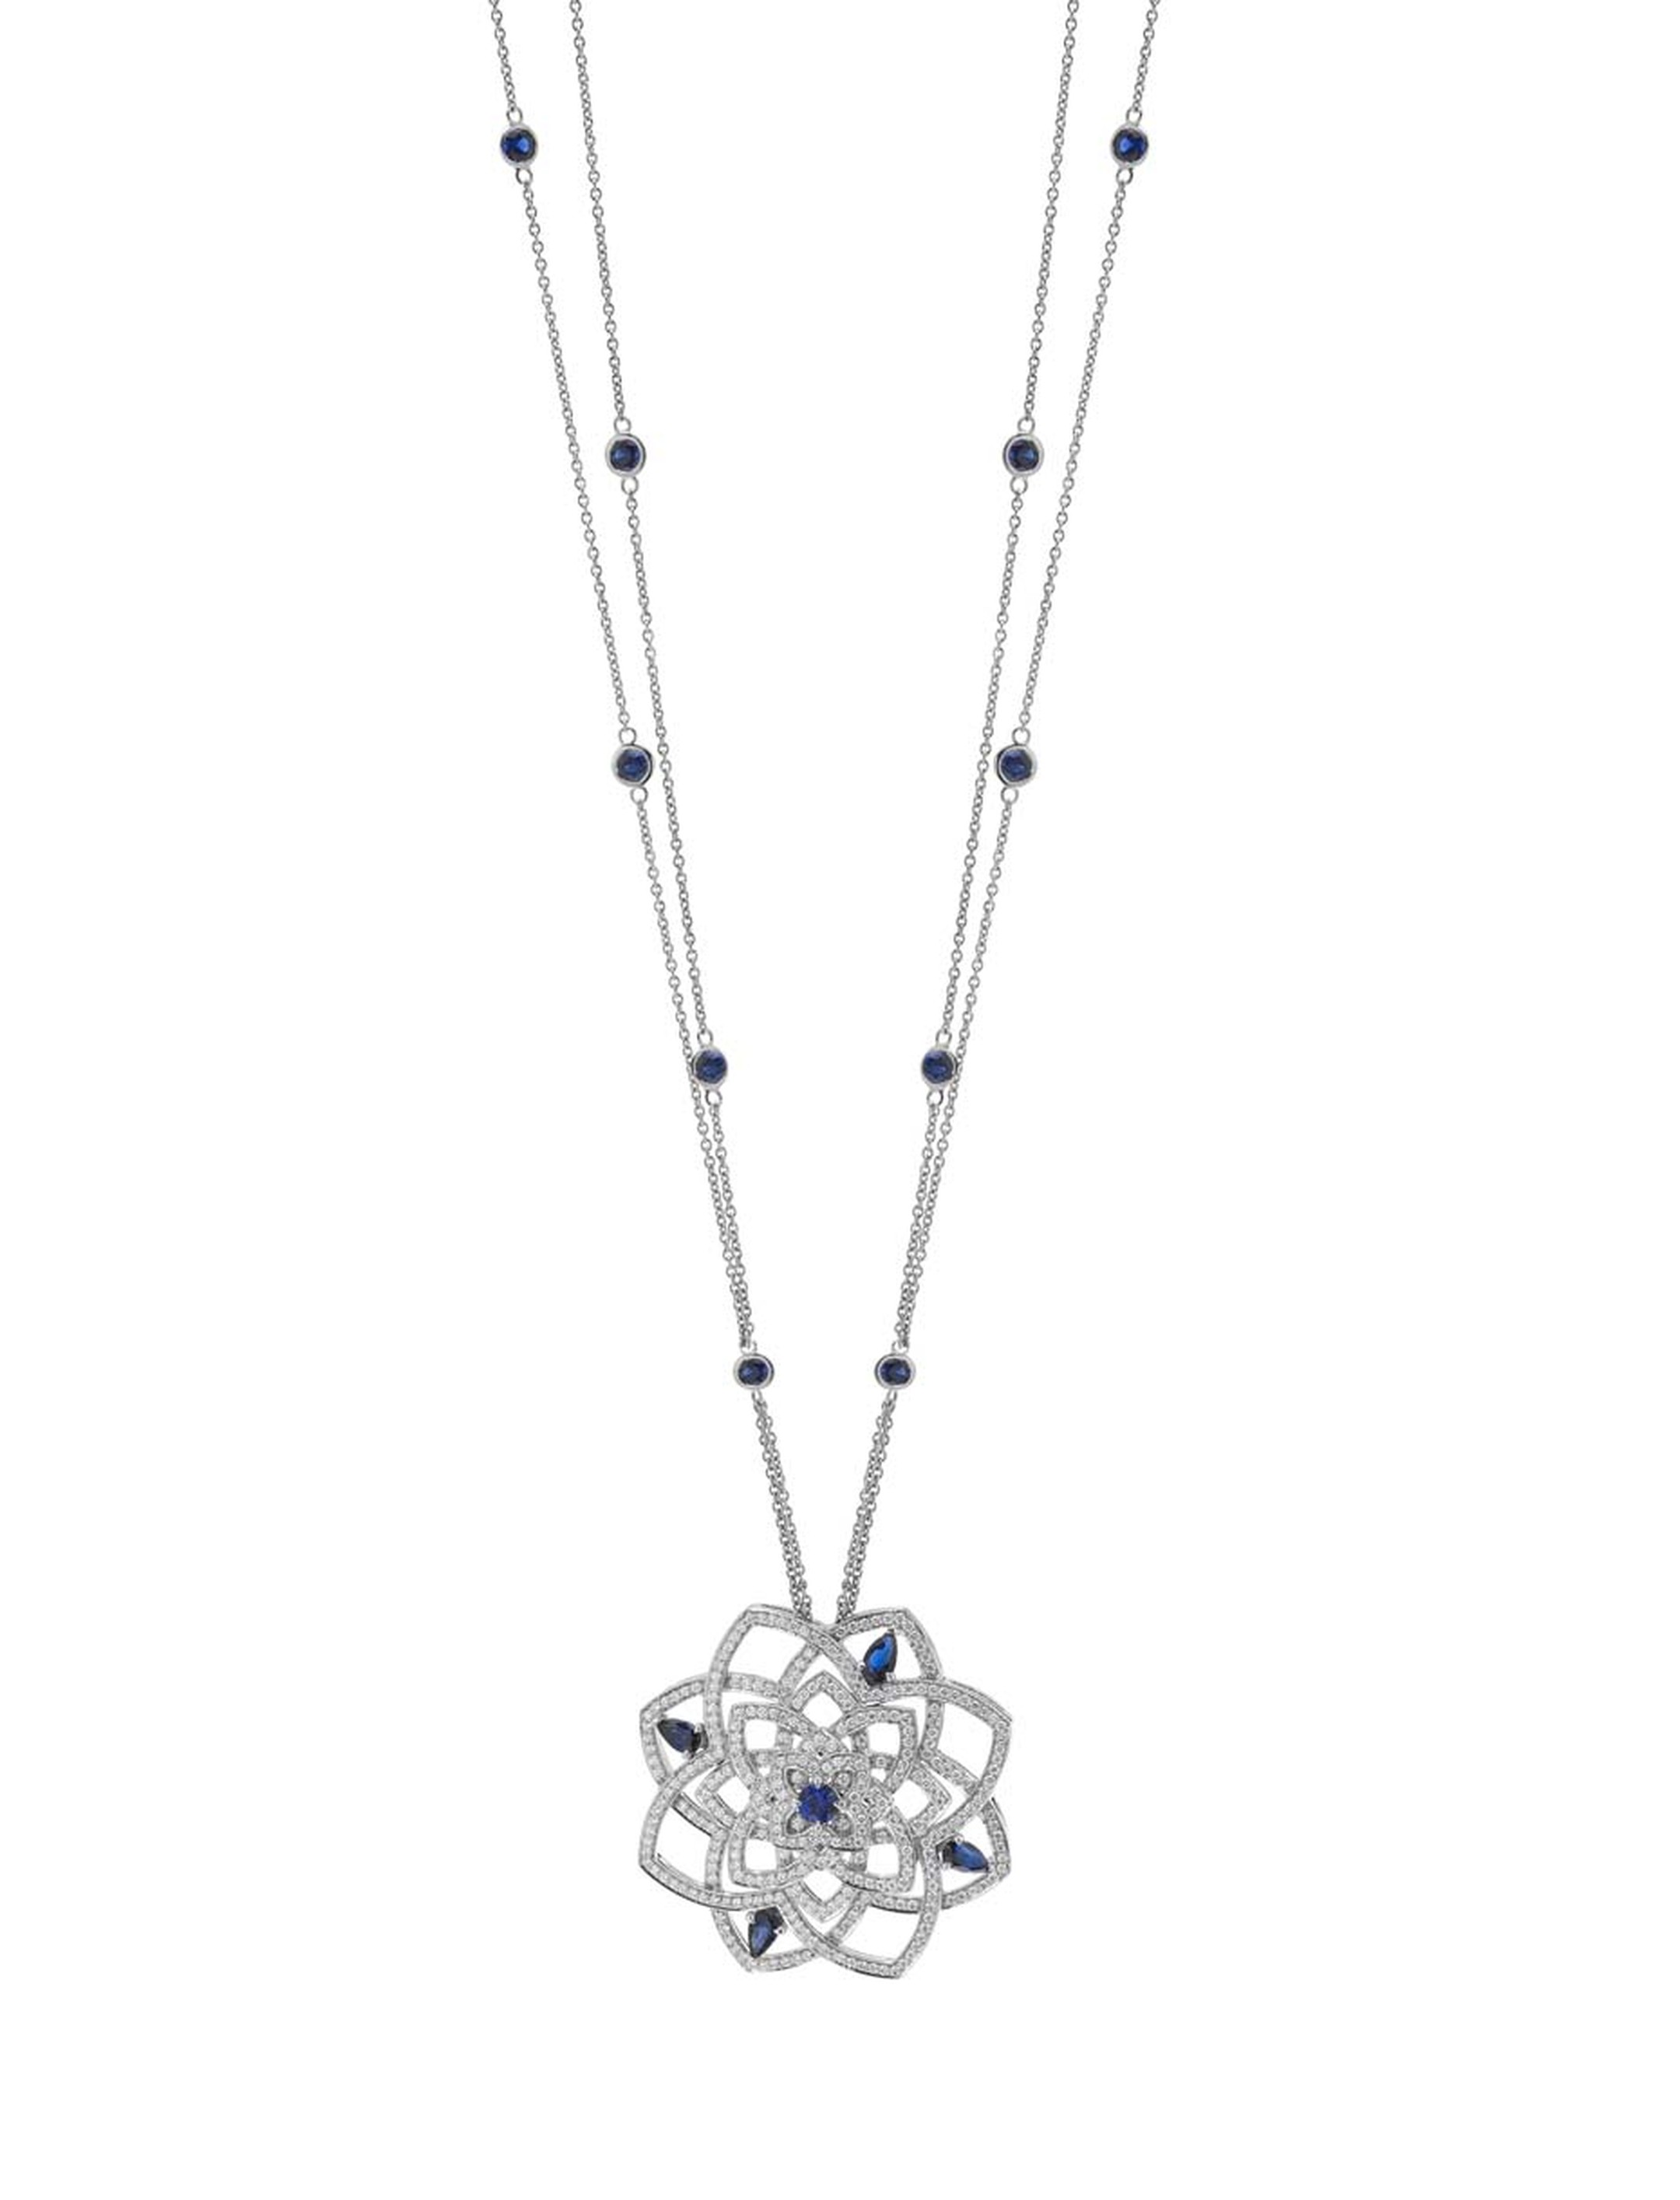 Mappin & Webb Floresco collection high jewellery pendant in white gold with diamonds and sapphires